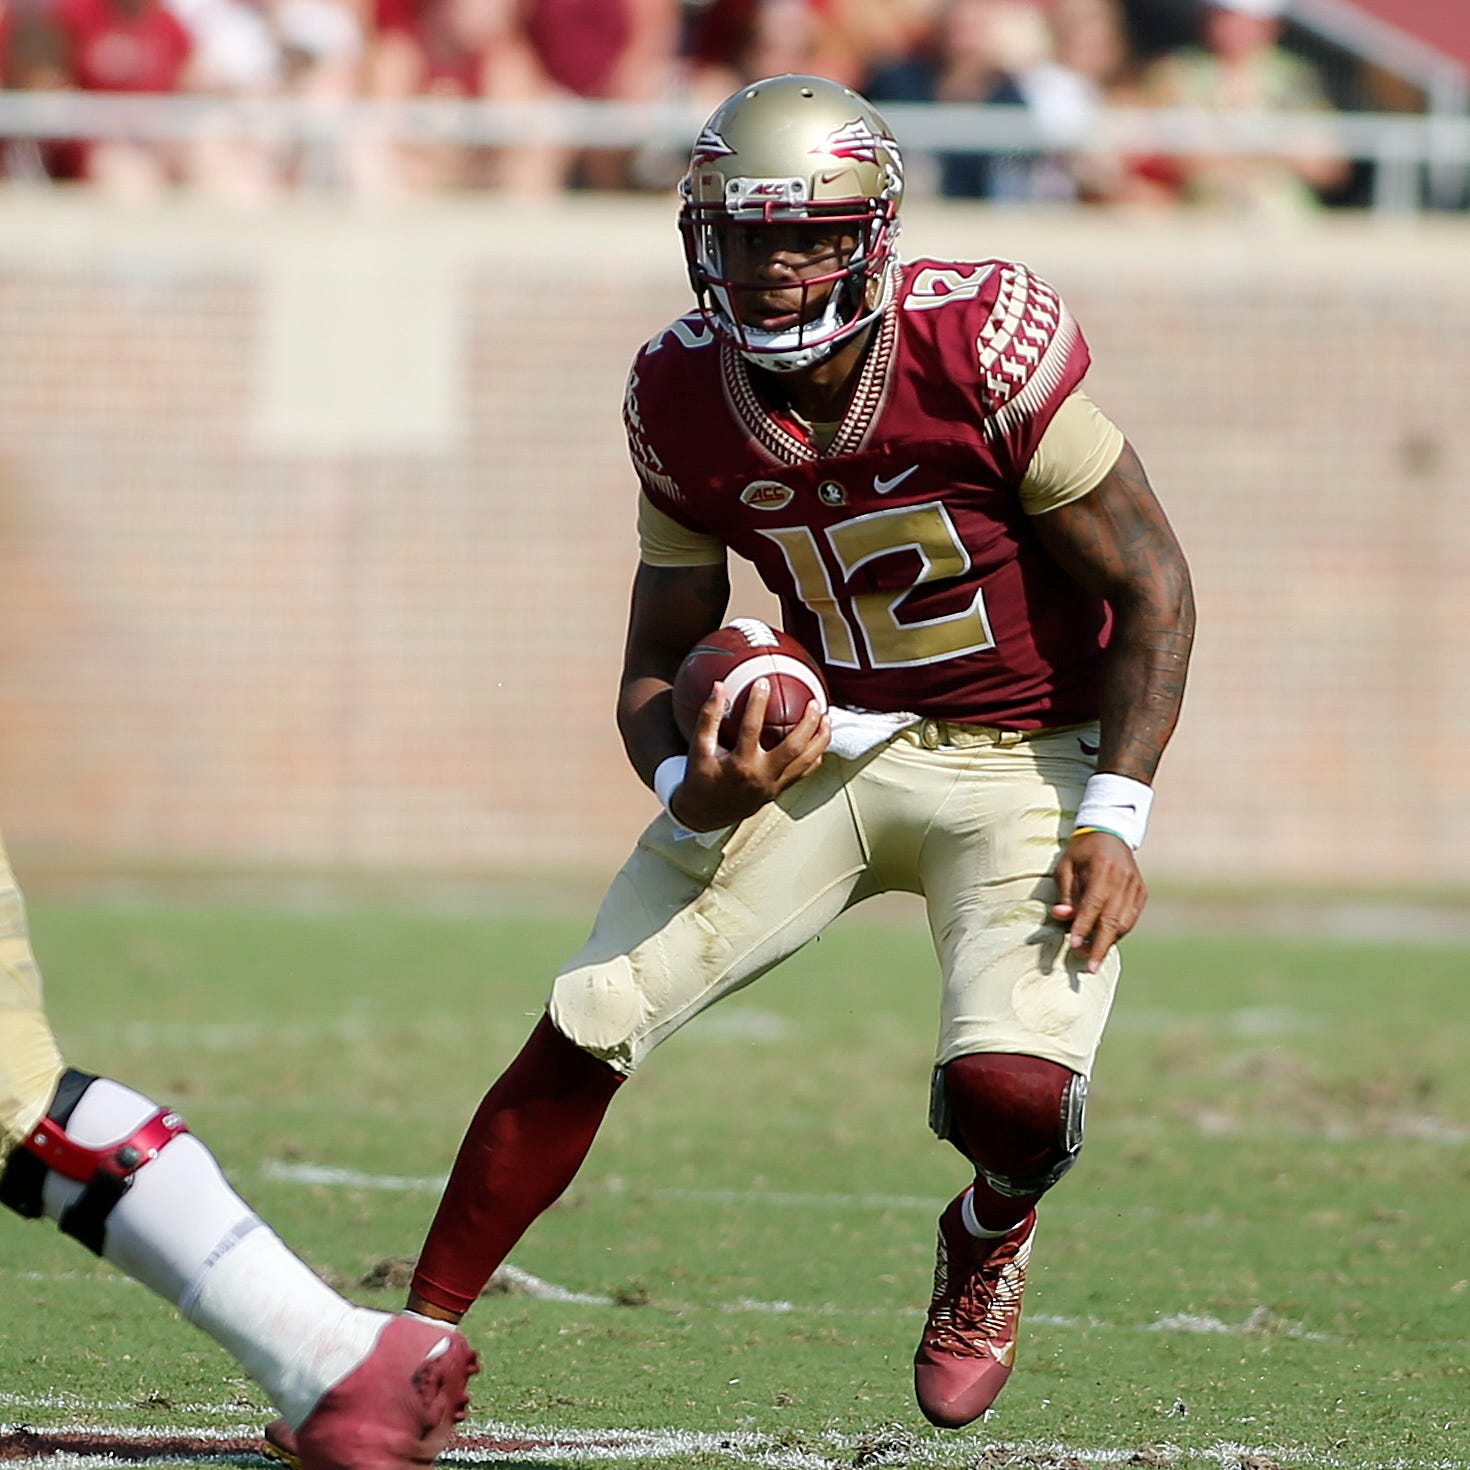 Final: Florida State defeats Northern Illinois 37-19